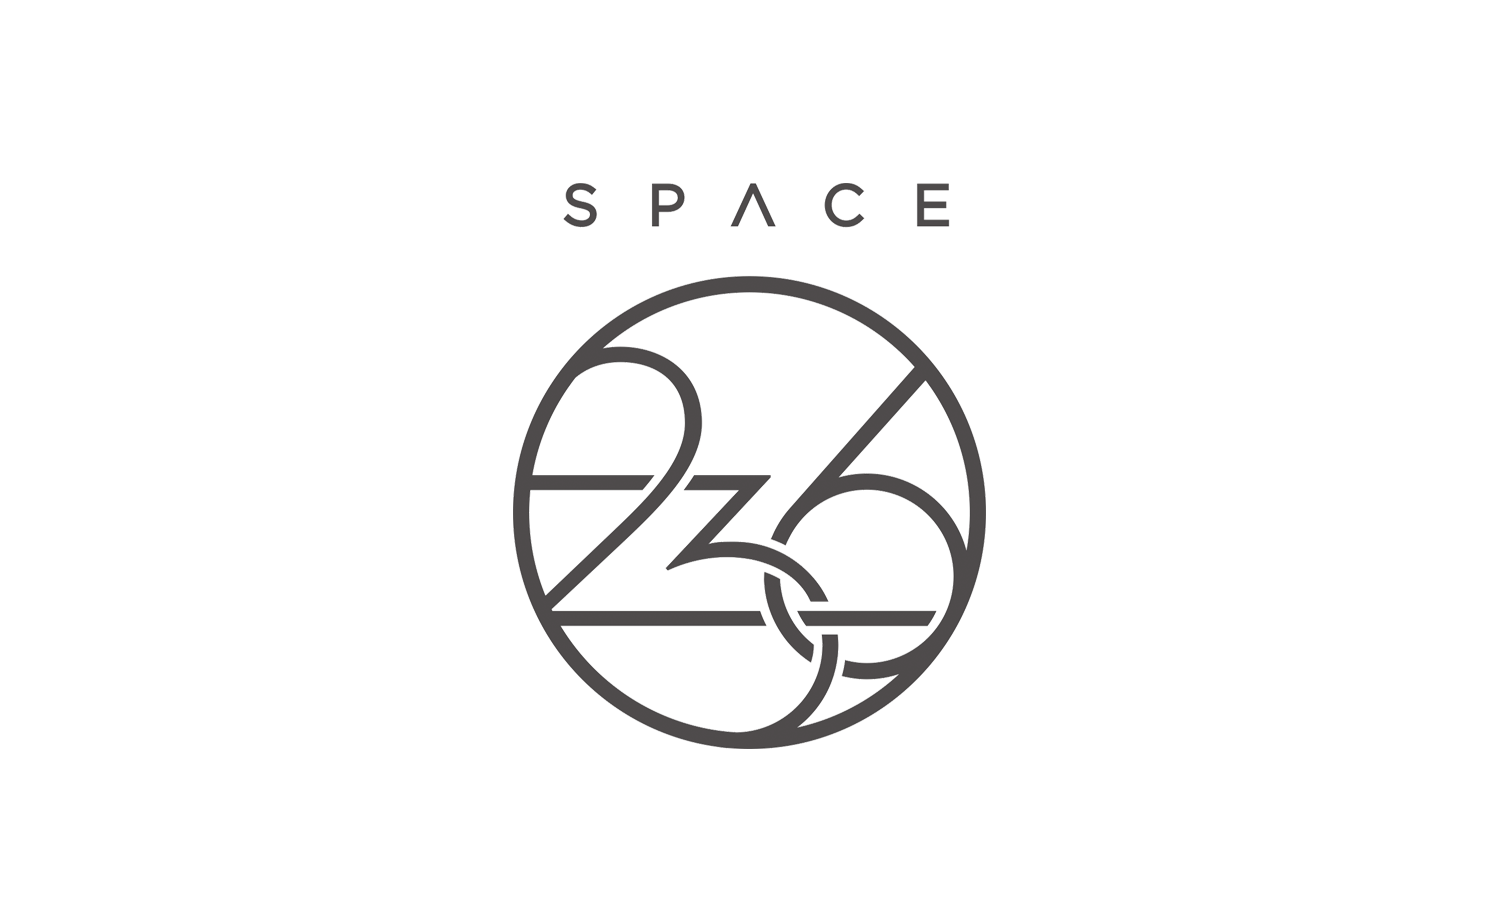 SPACE236logo_transparent.png